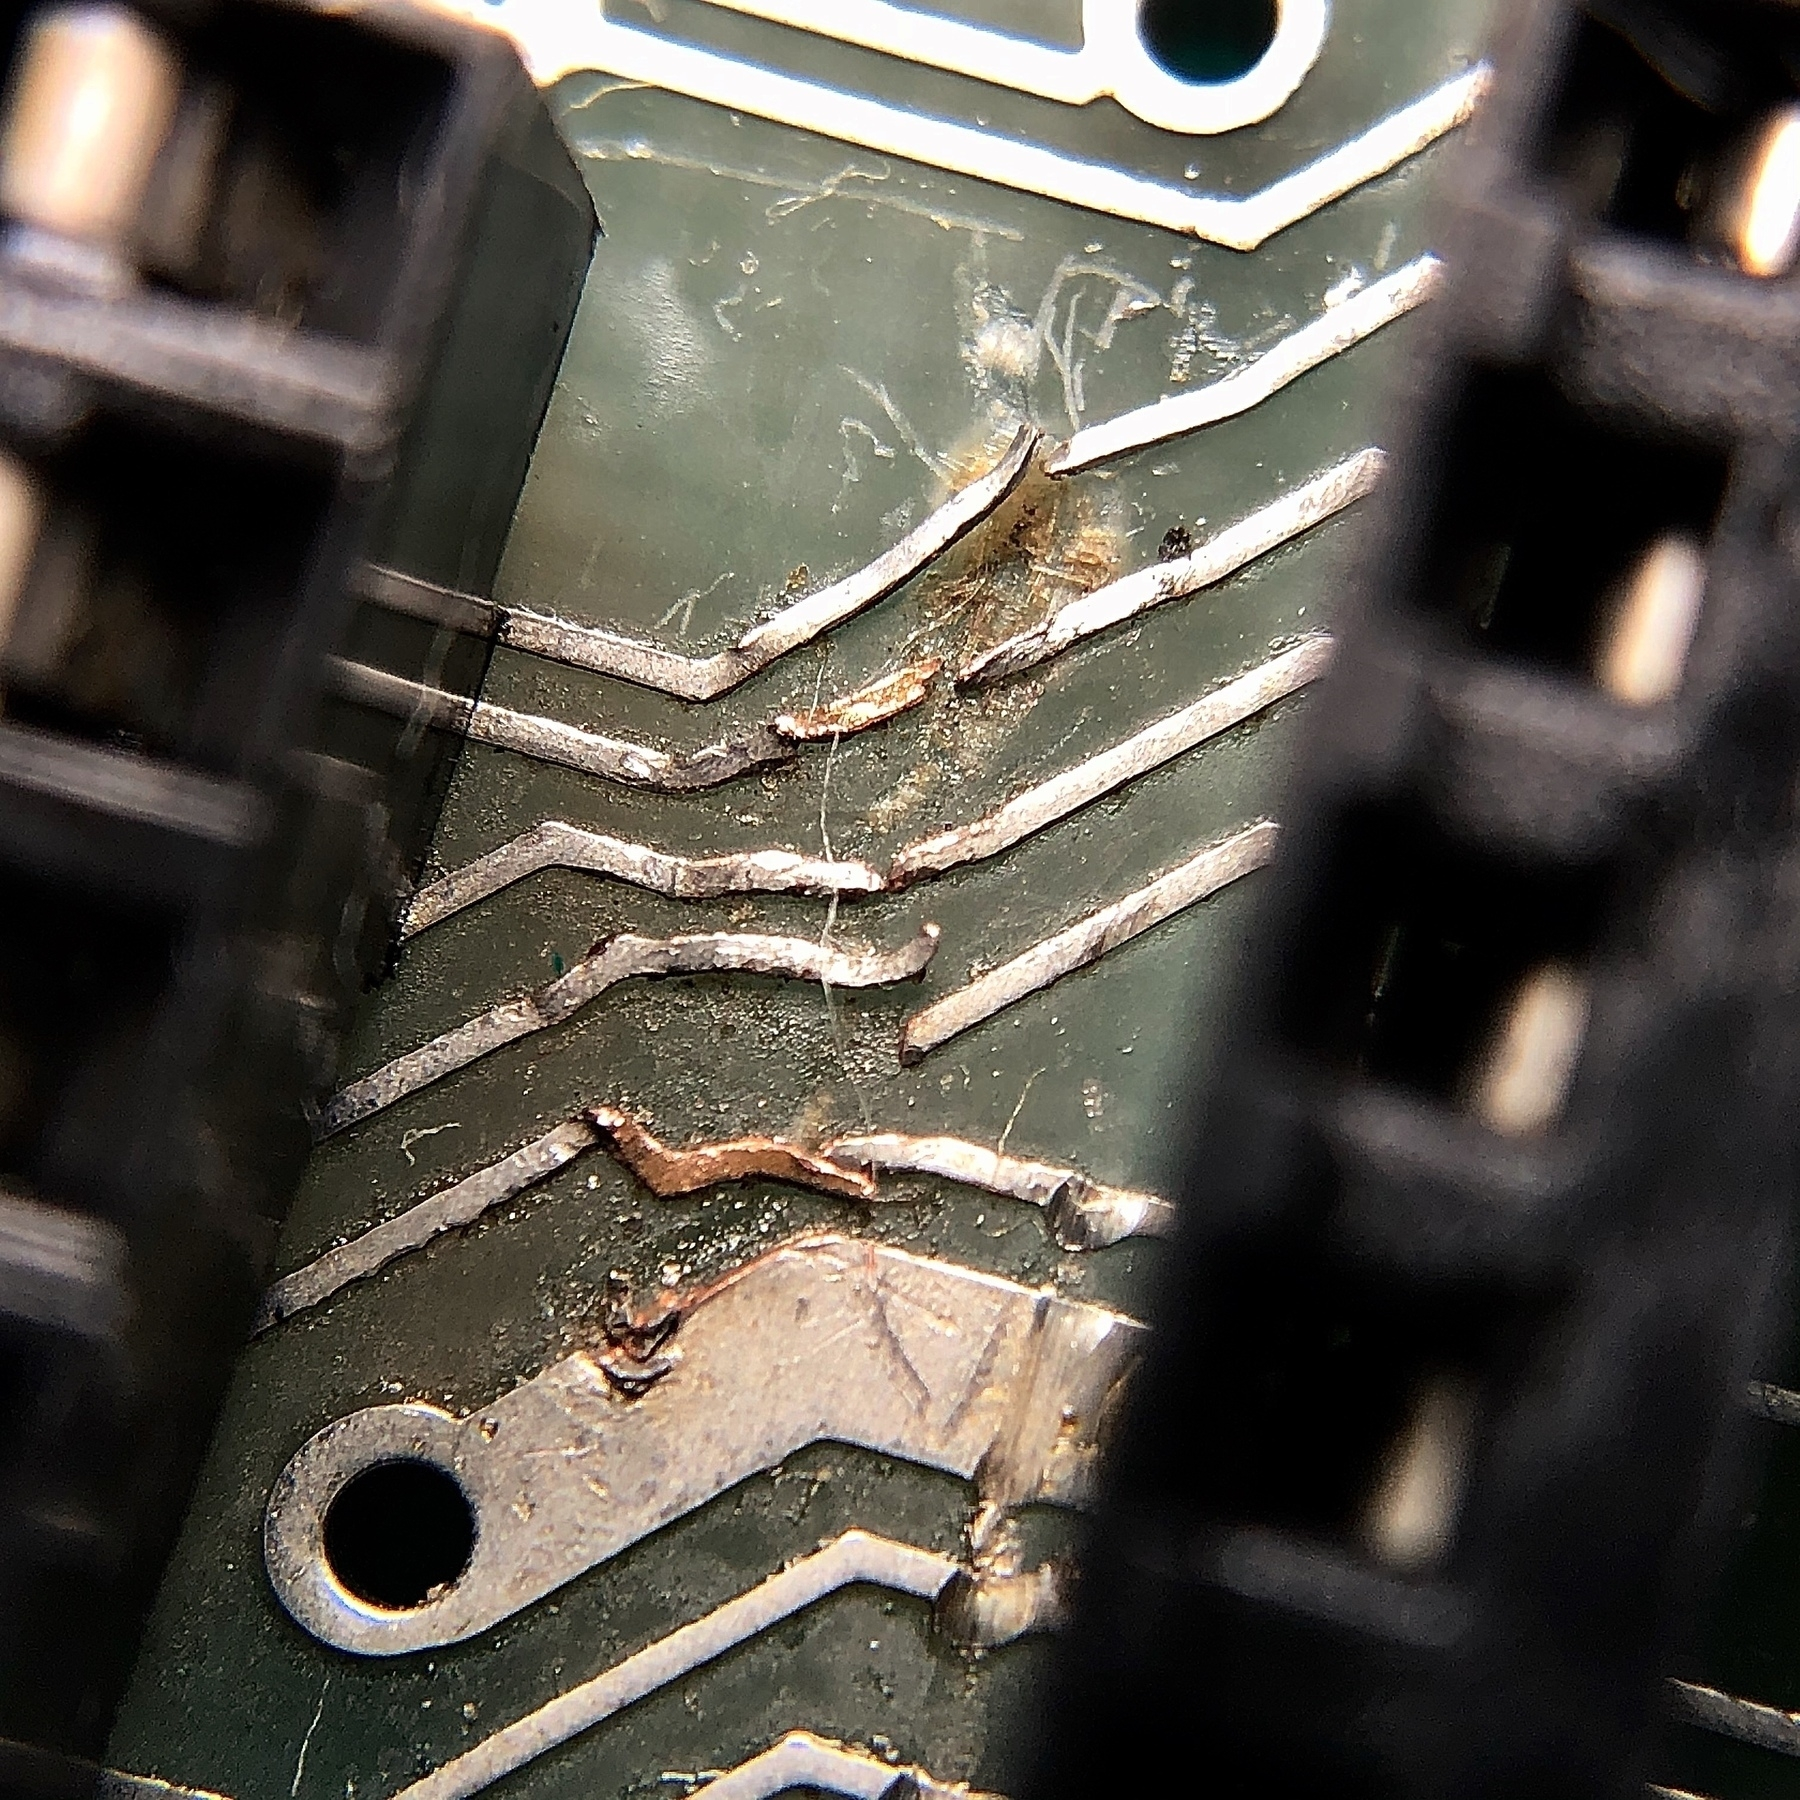 closeup of damaged electrical circuits